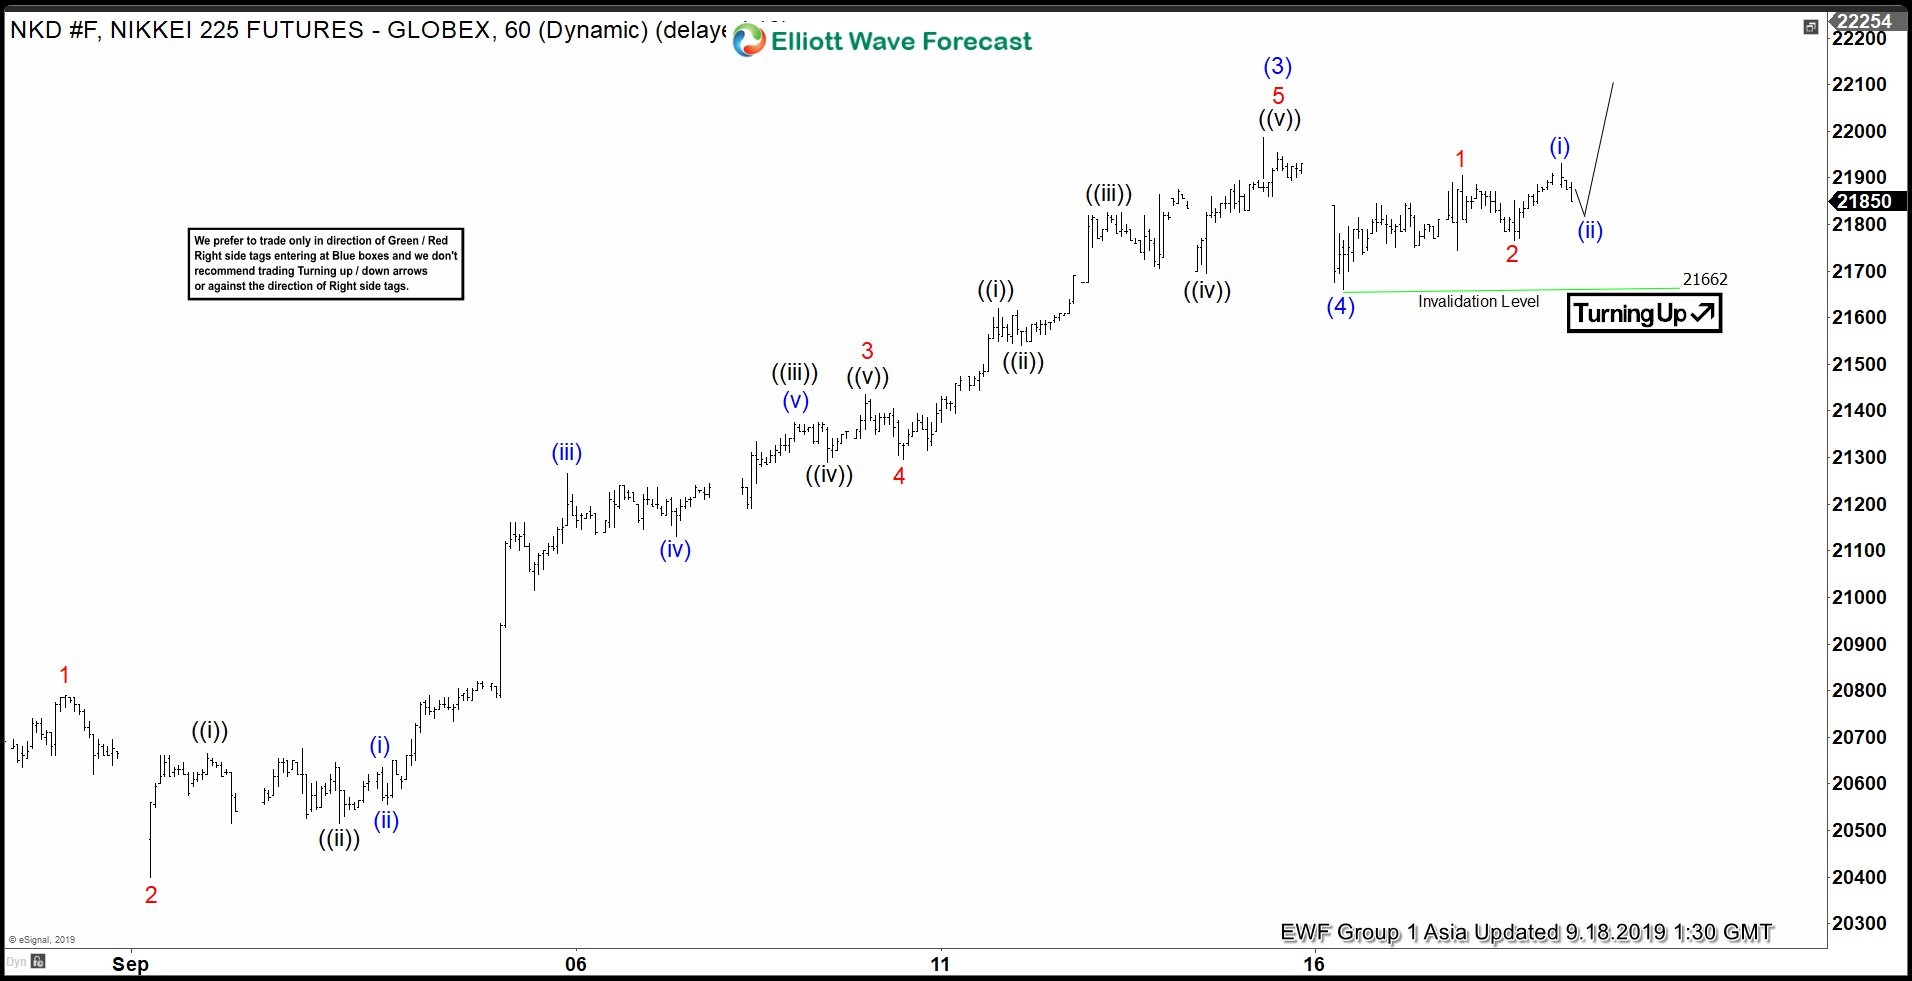 Elliott Wave View: Impulsive Rally in Nikkei